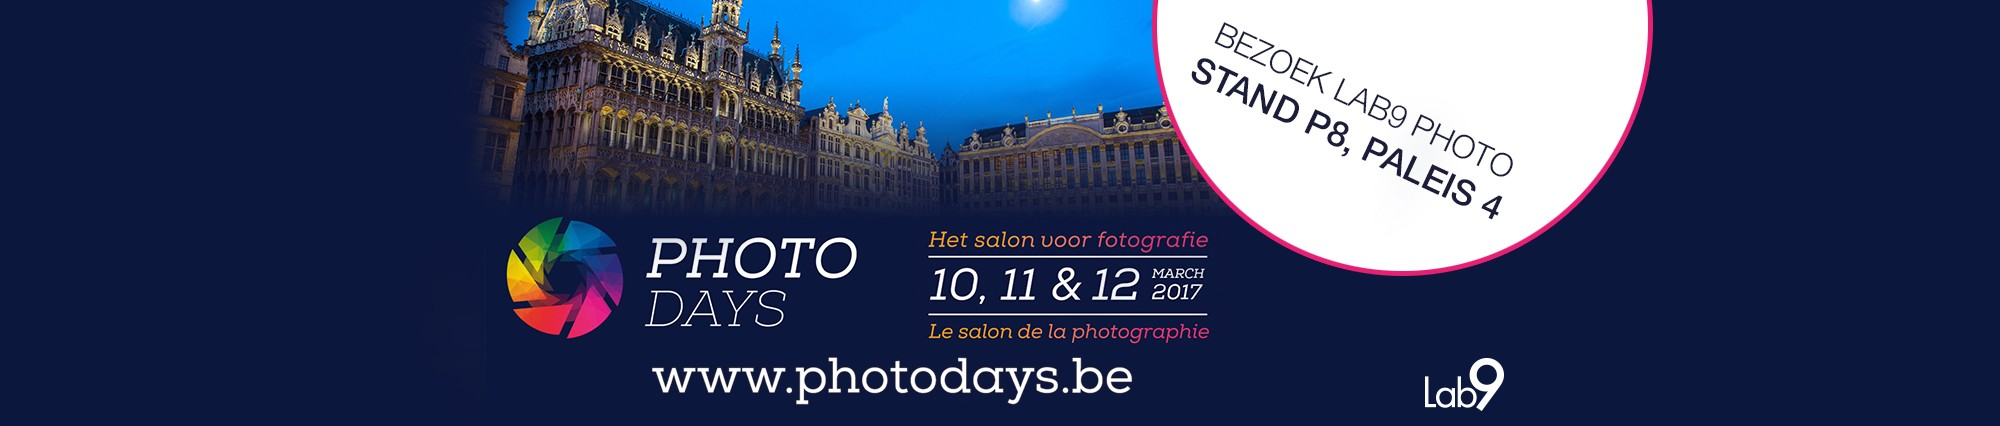 https://dpyxfisjd0mft.cloudfront.net/lab9-2/B2B/Evenementen/Photodays2017/WebbannerHome-Photodays.jpg?1487759704&w=2000&h=426